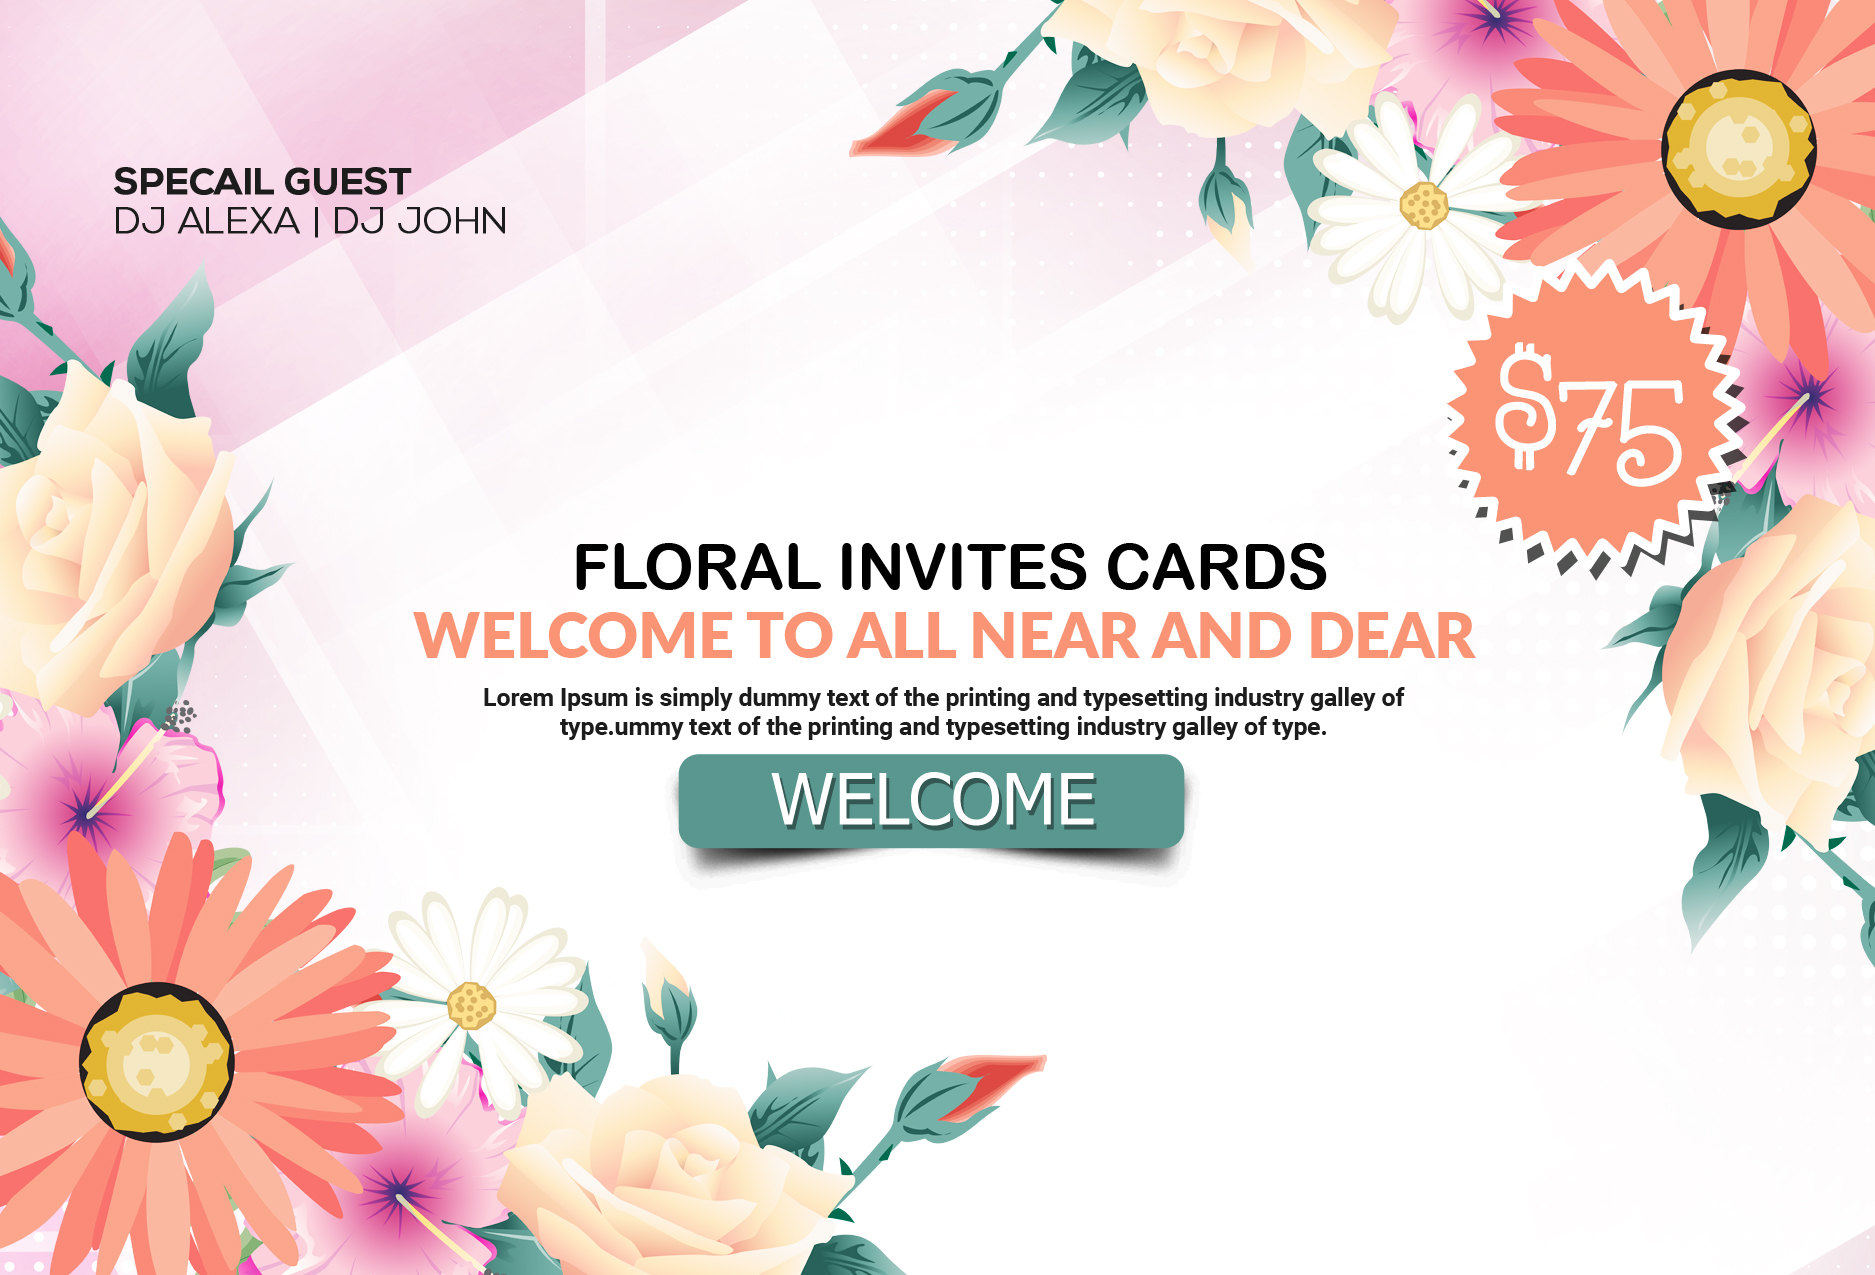 Floral Invitation Card Template example image 2